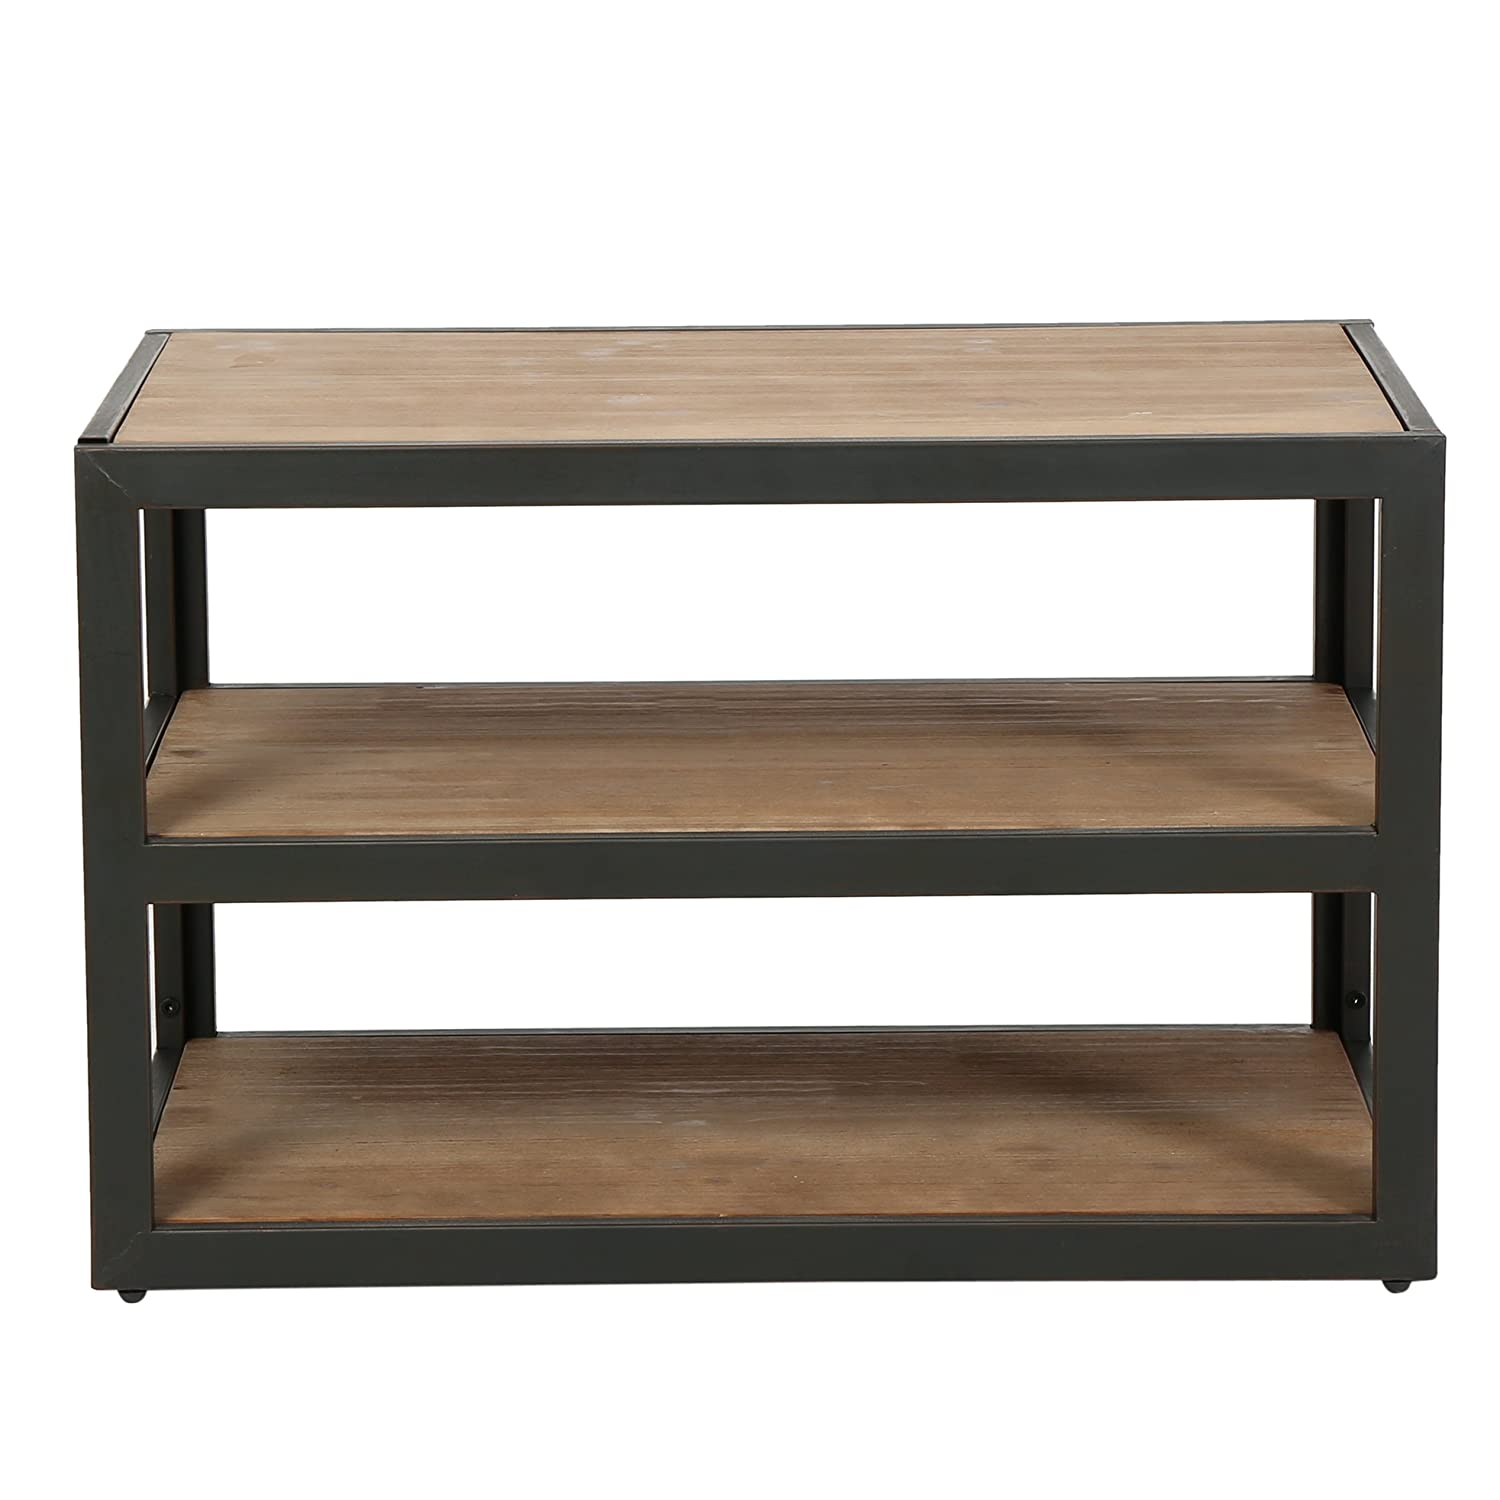 abfe8325b791a Attractive Amazon.com  Lundin 3-Shelf Industrial Media Console  Kitchen    Dining